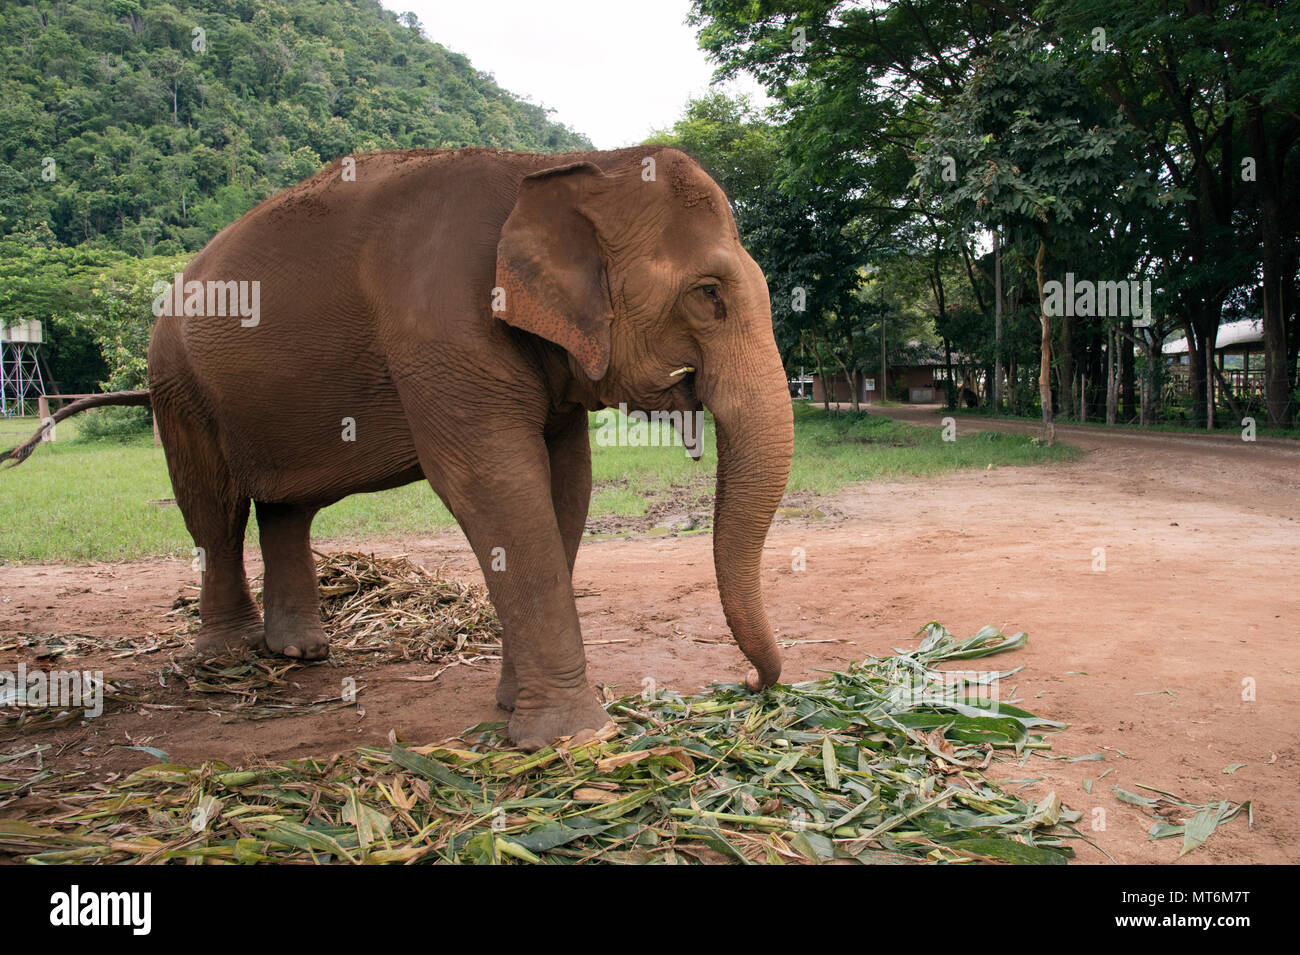 Elephant Nature Park Stockbild